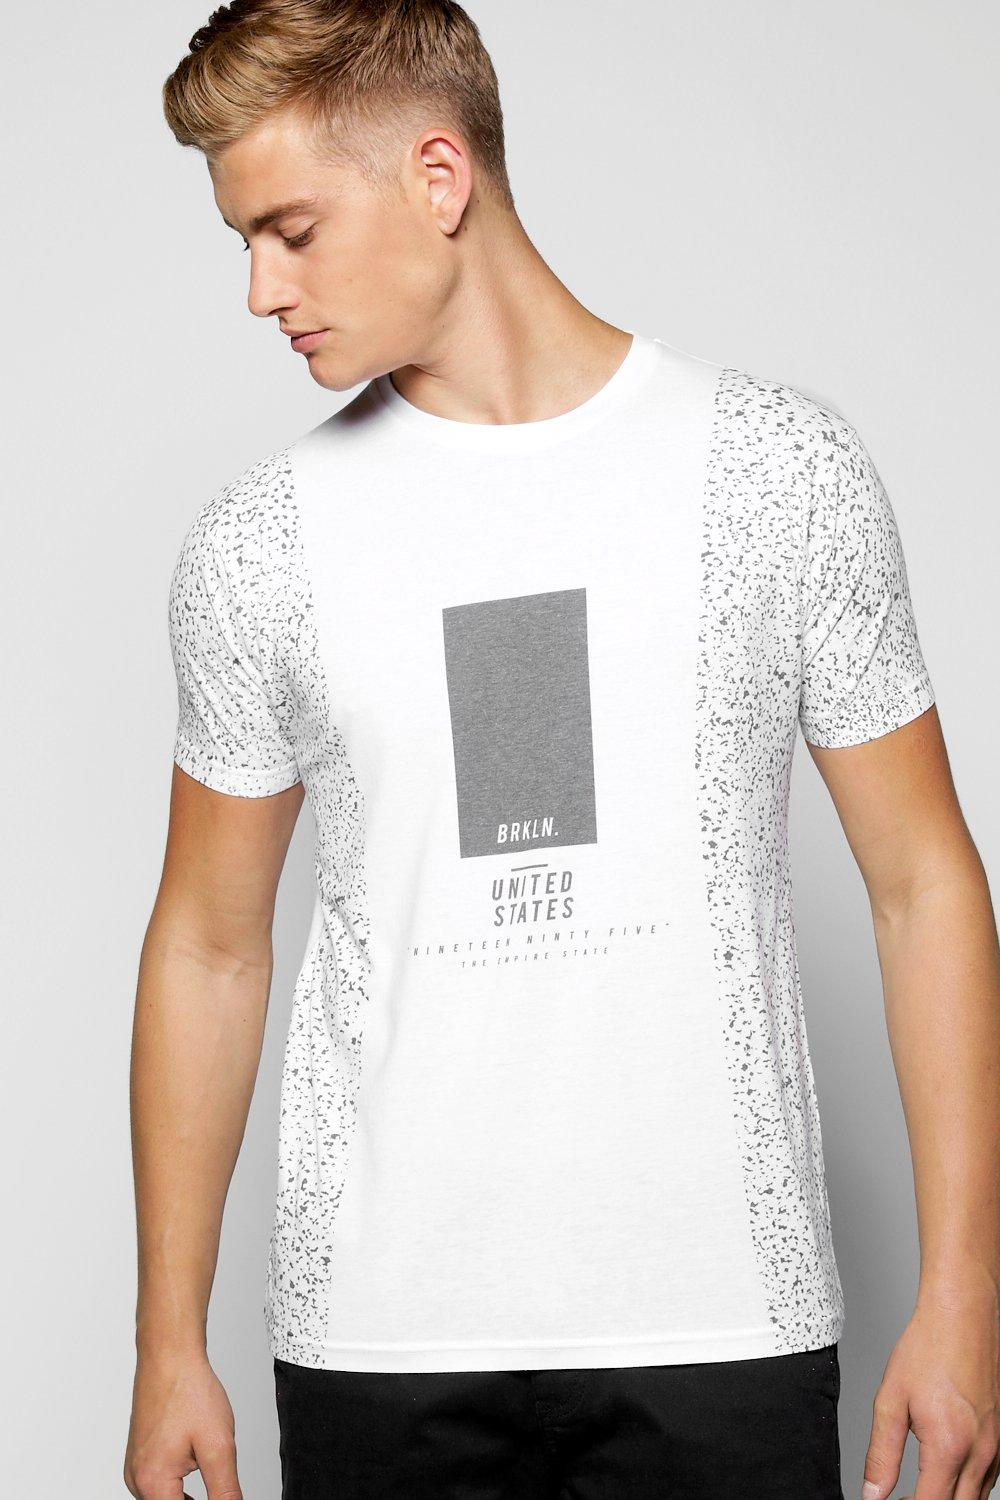 BRKLN Speckle Sublimation T Shirt